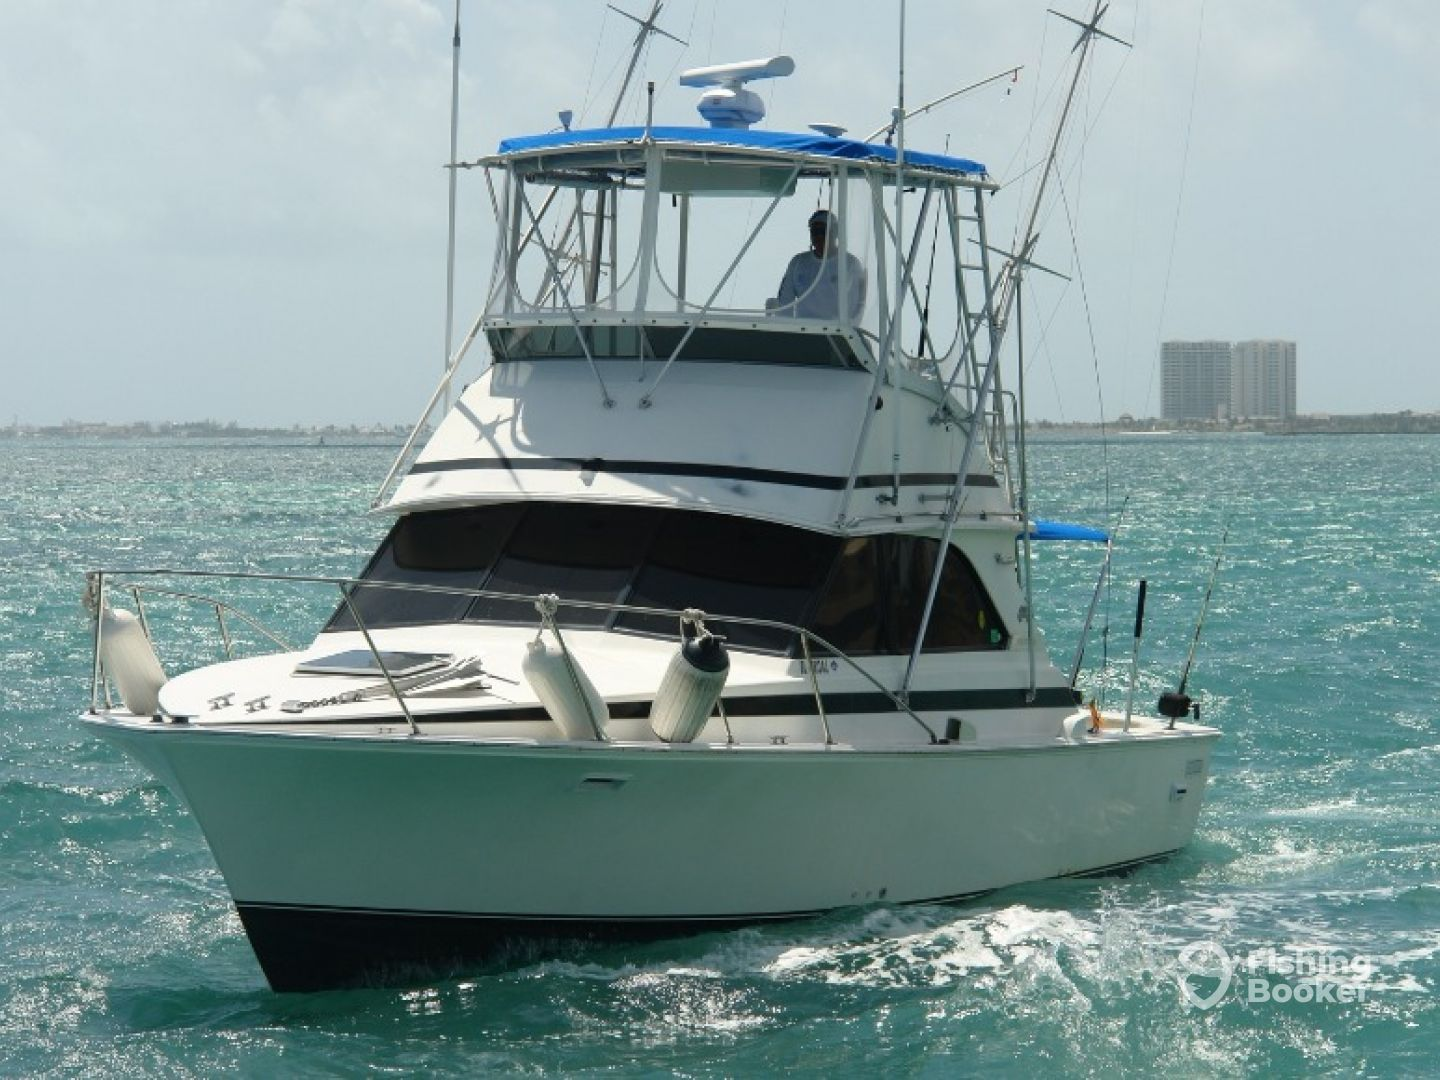 Fishing Cancún Charters